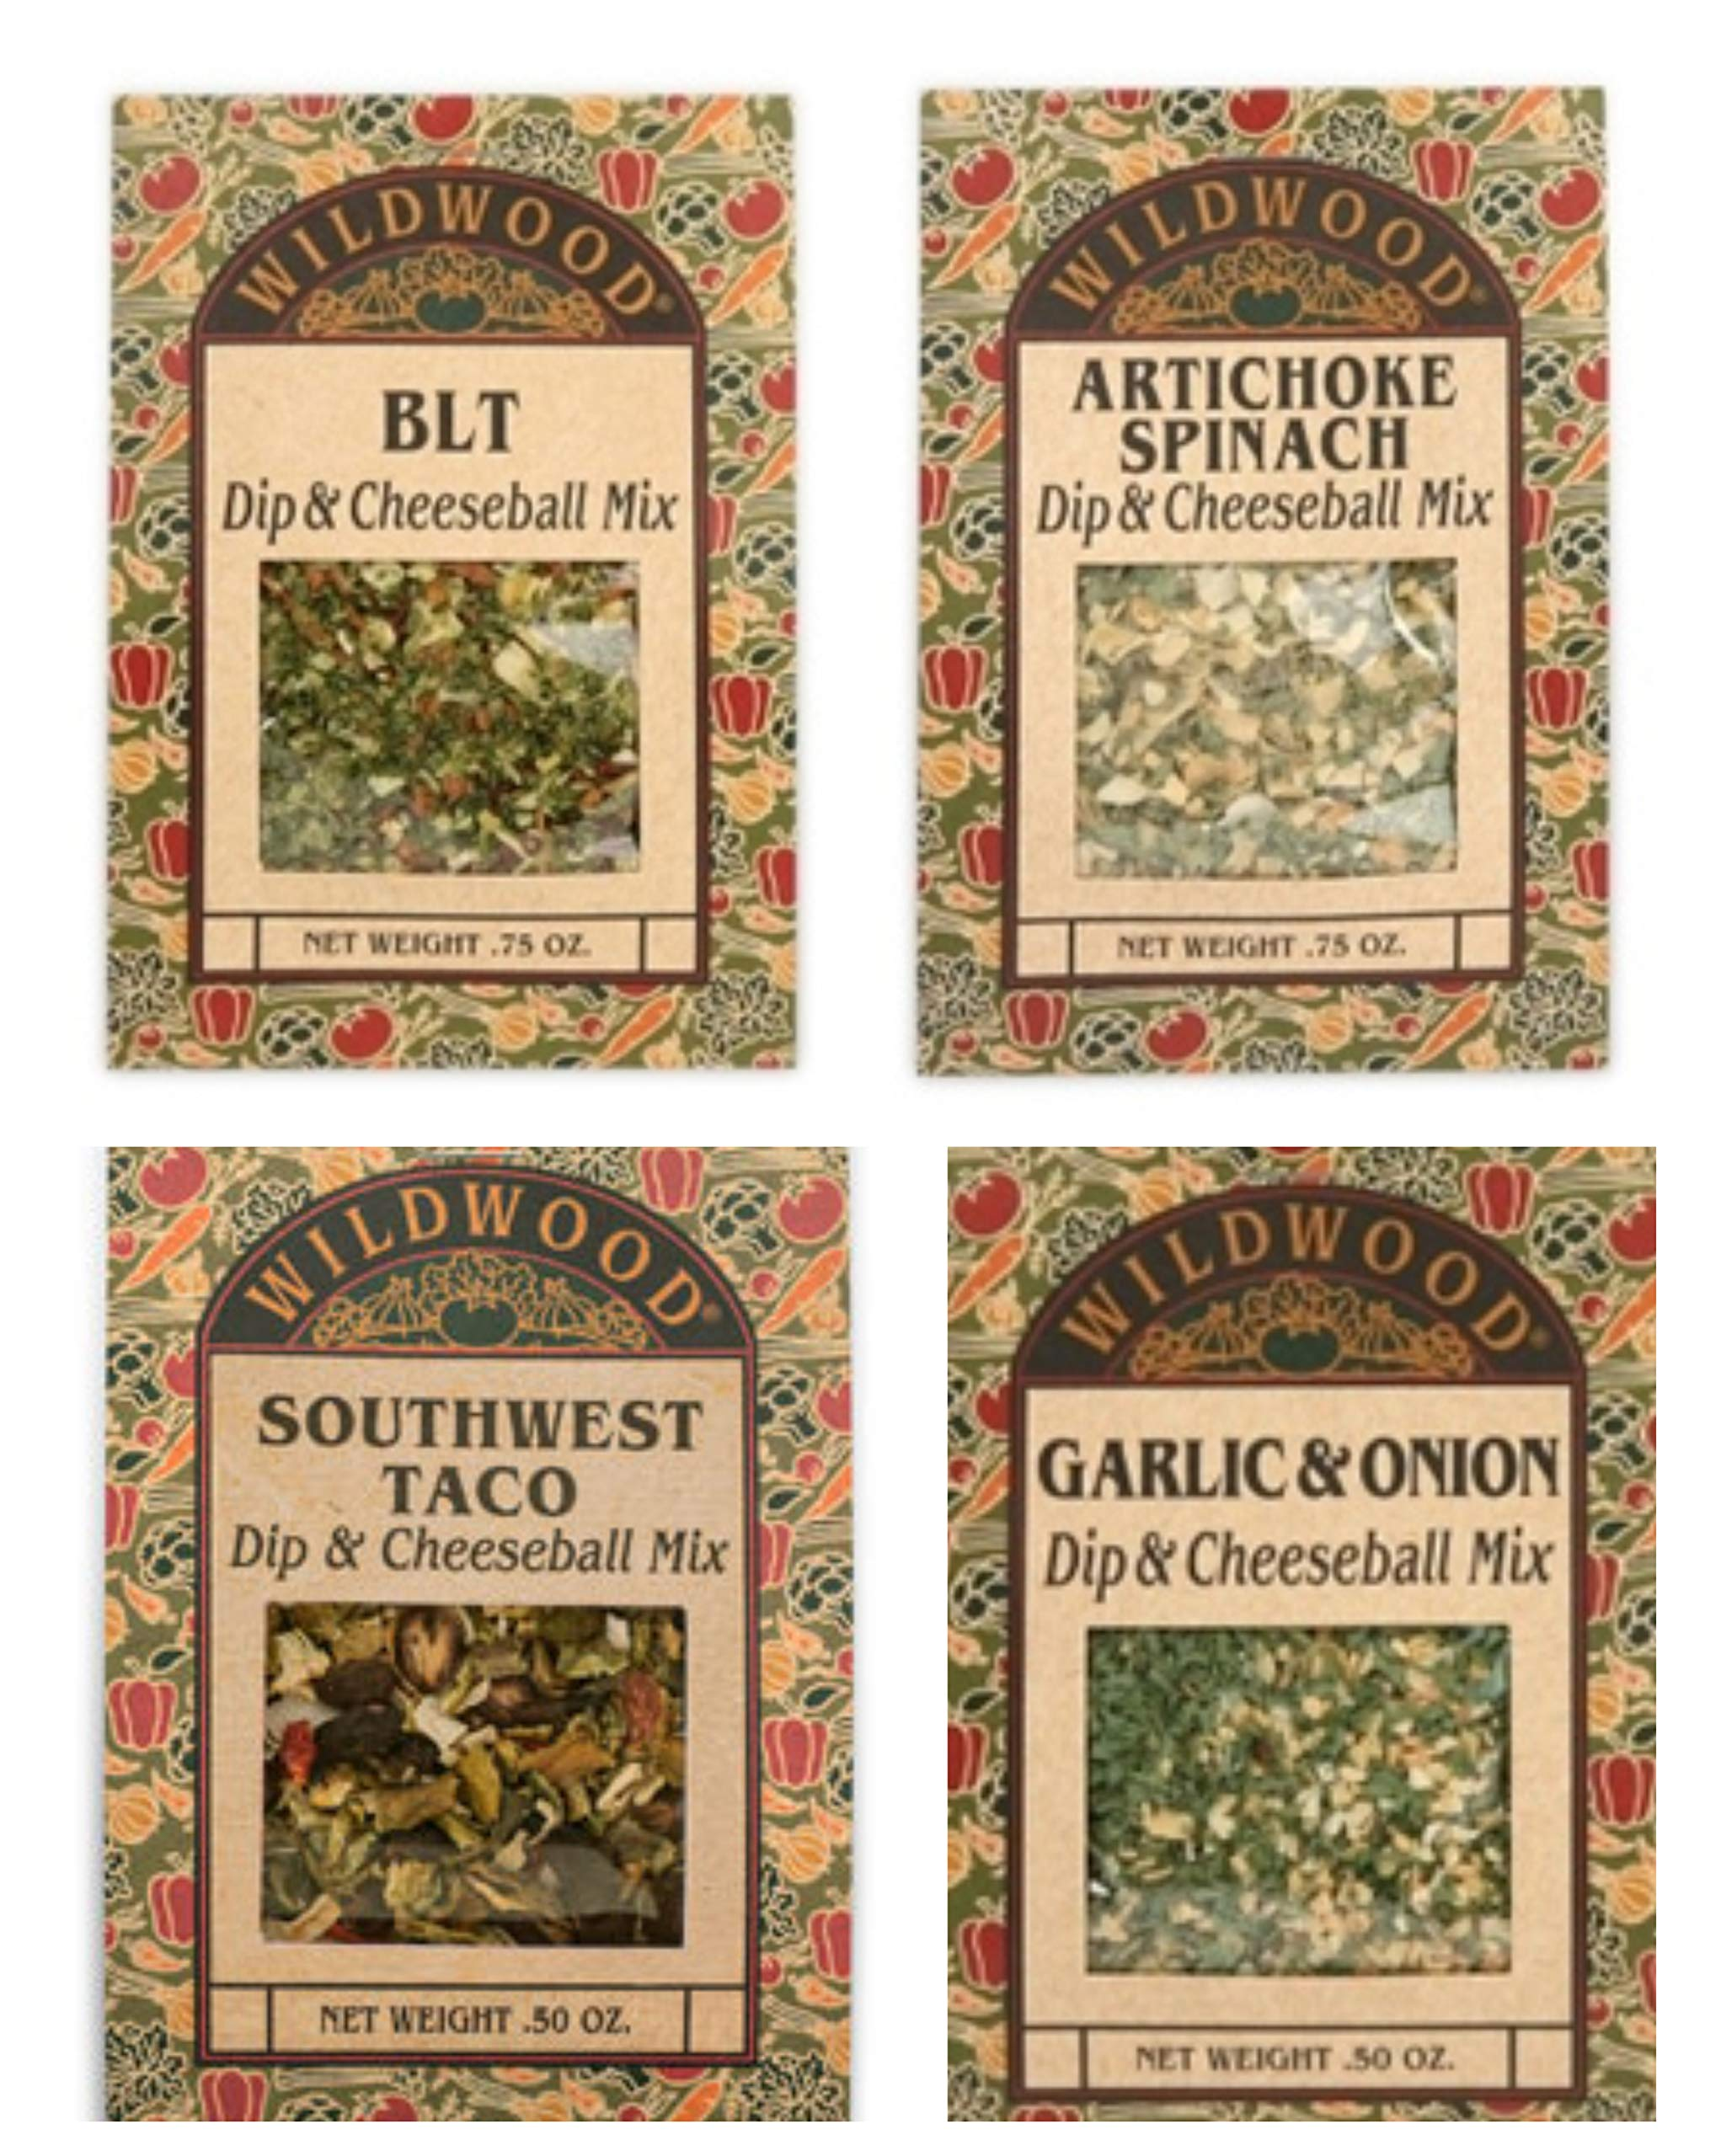 Wildwood Dip & Cheeseball Mix Bundle (4 Pack): Artichoke Spinach, Garlic & Onion, BLT, and Southwest Taco by Wildwood Specialty Foods